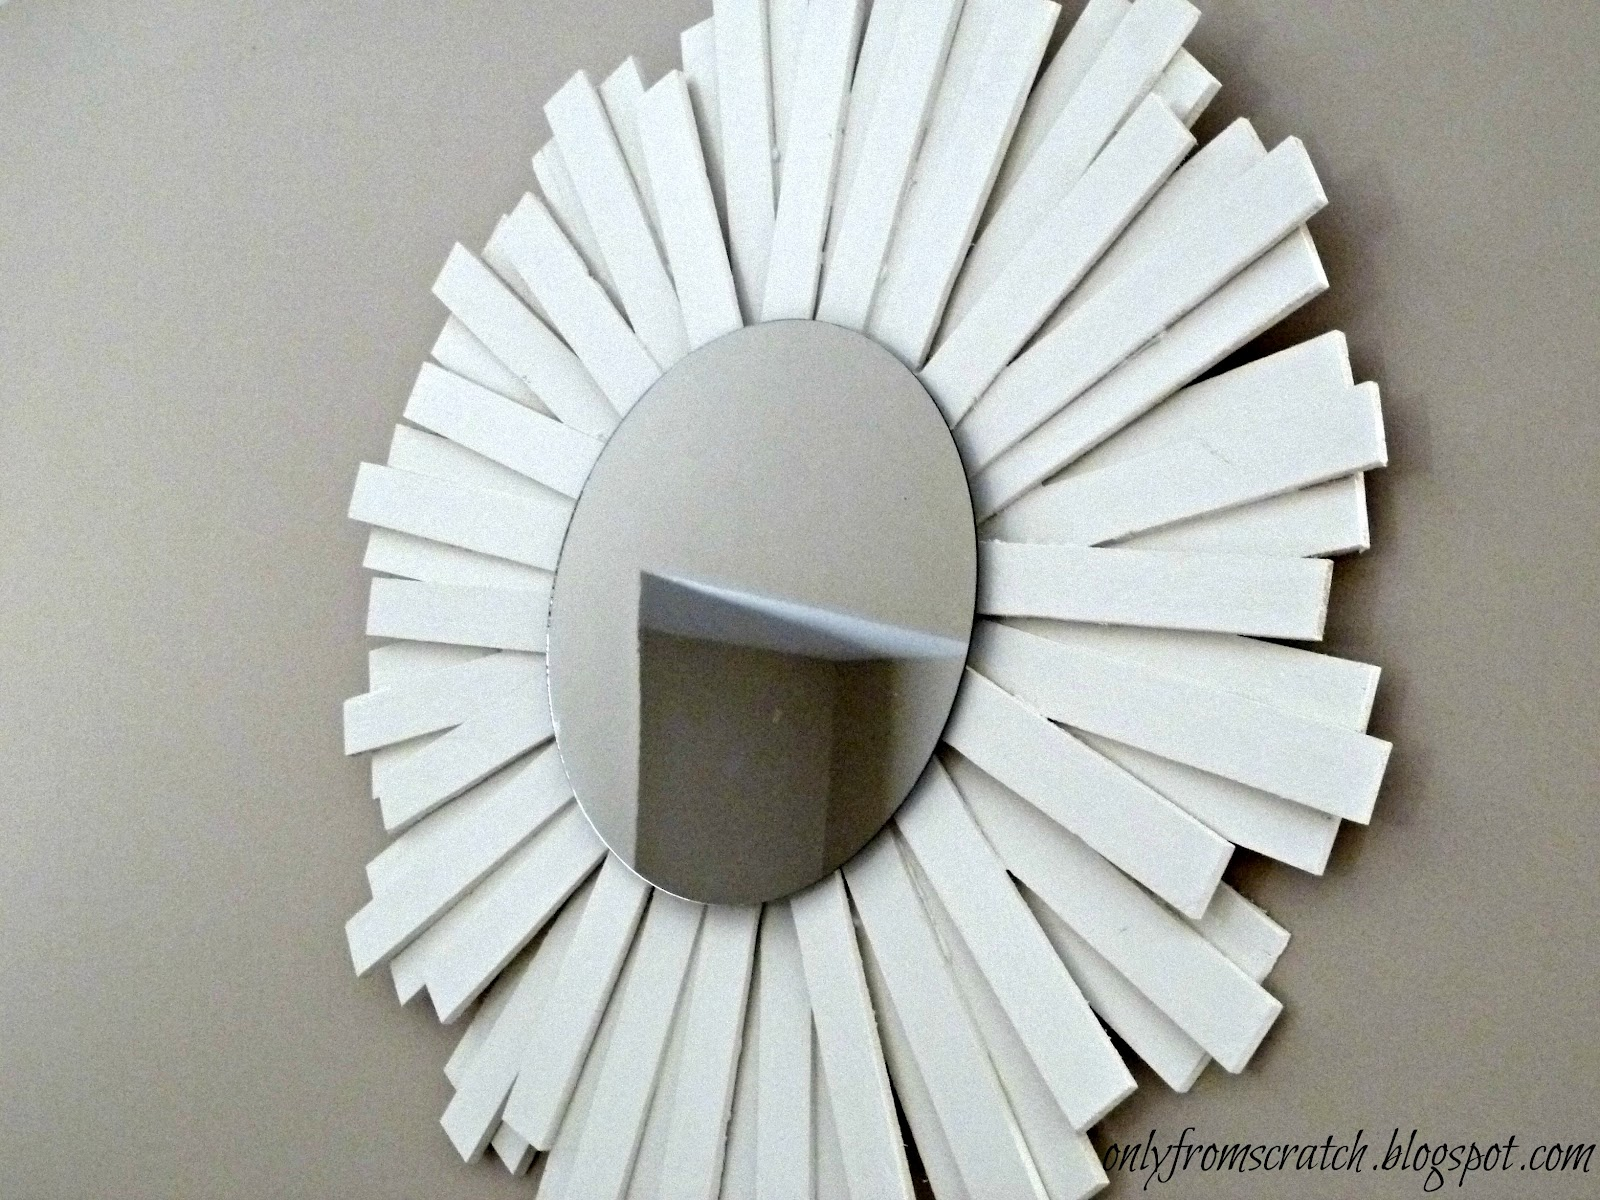 Only from scratch sunburst mirror with wooden shims for Sunburst mirror